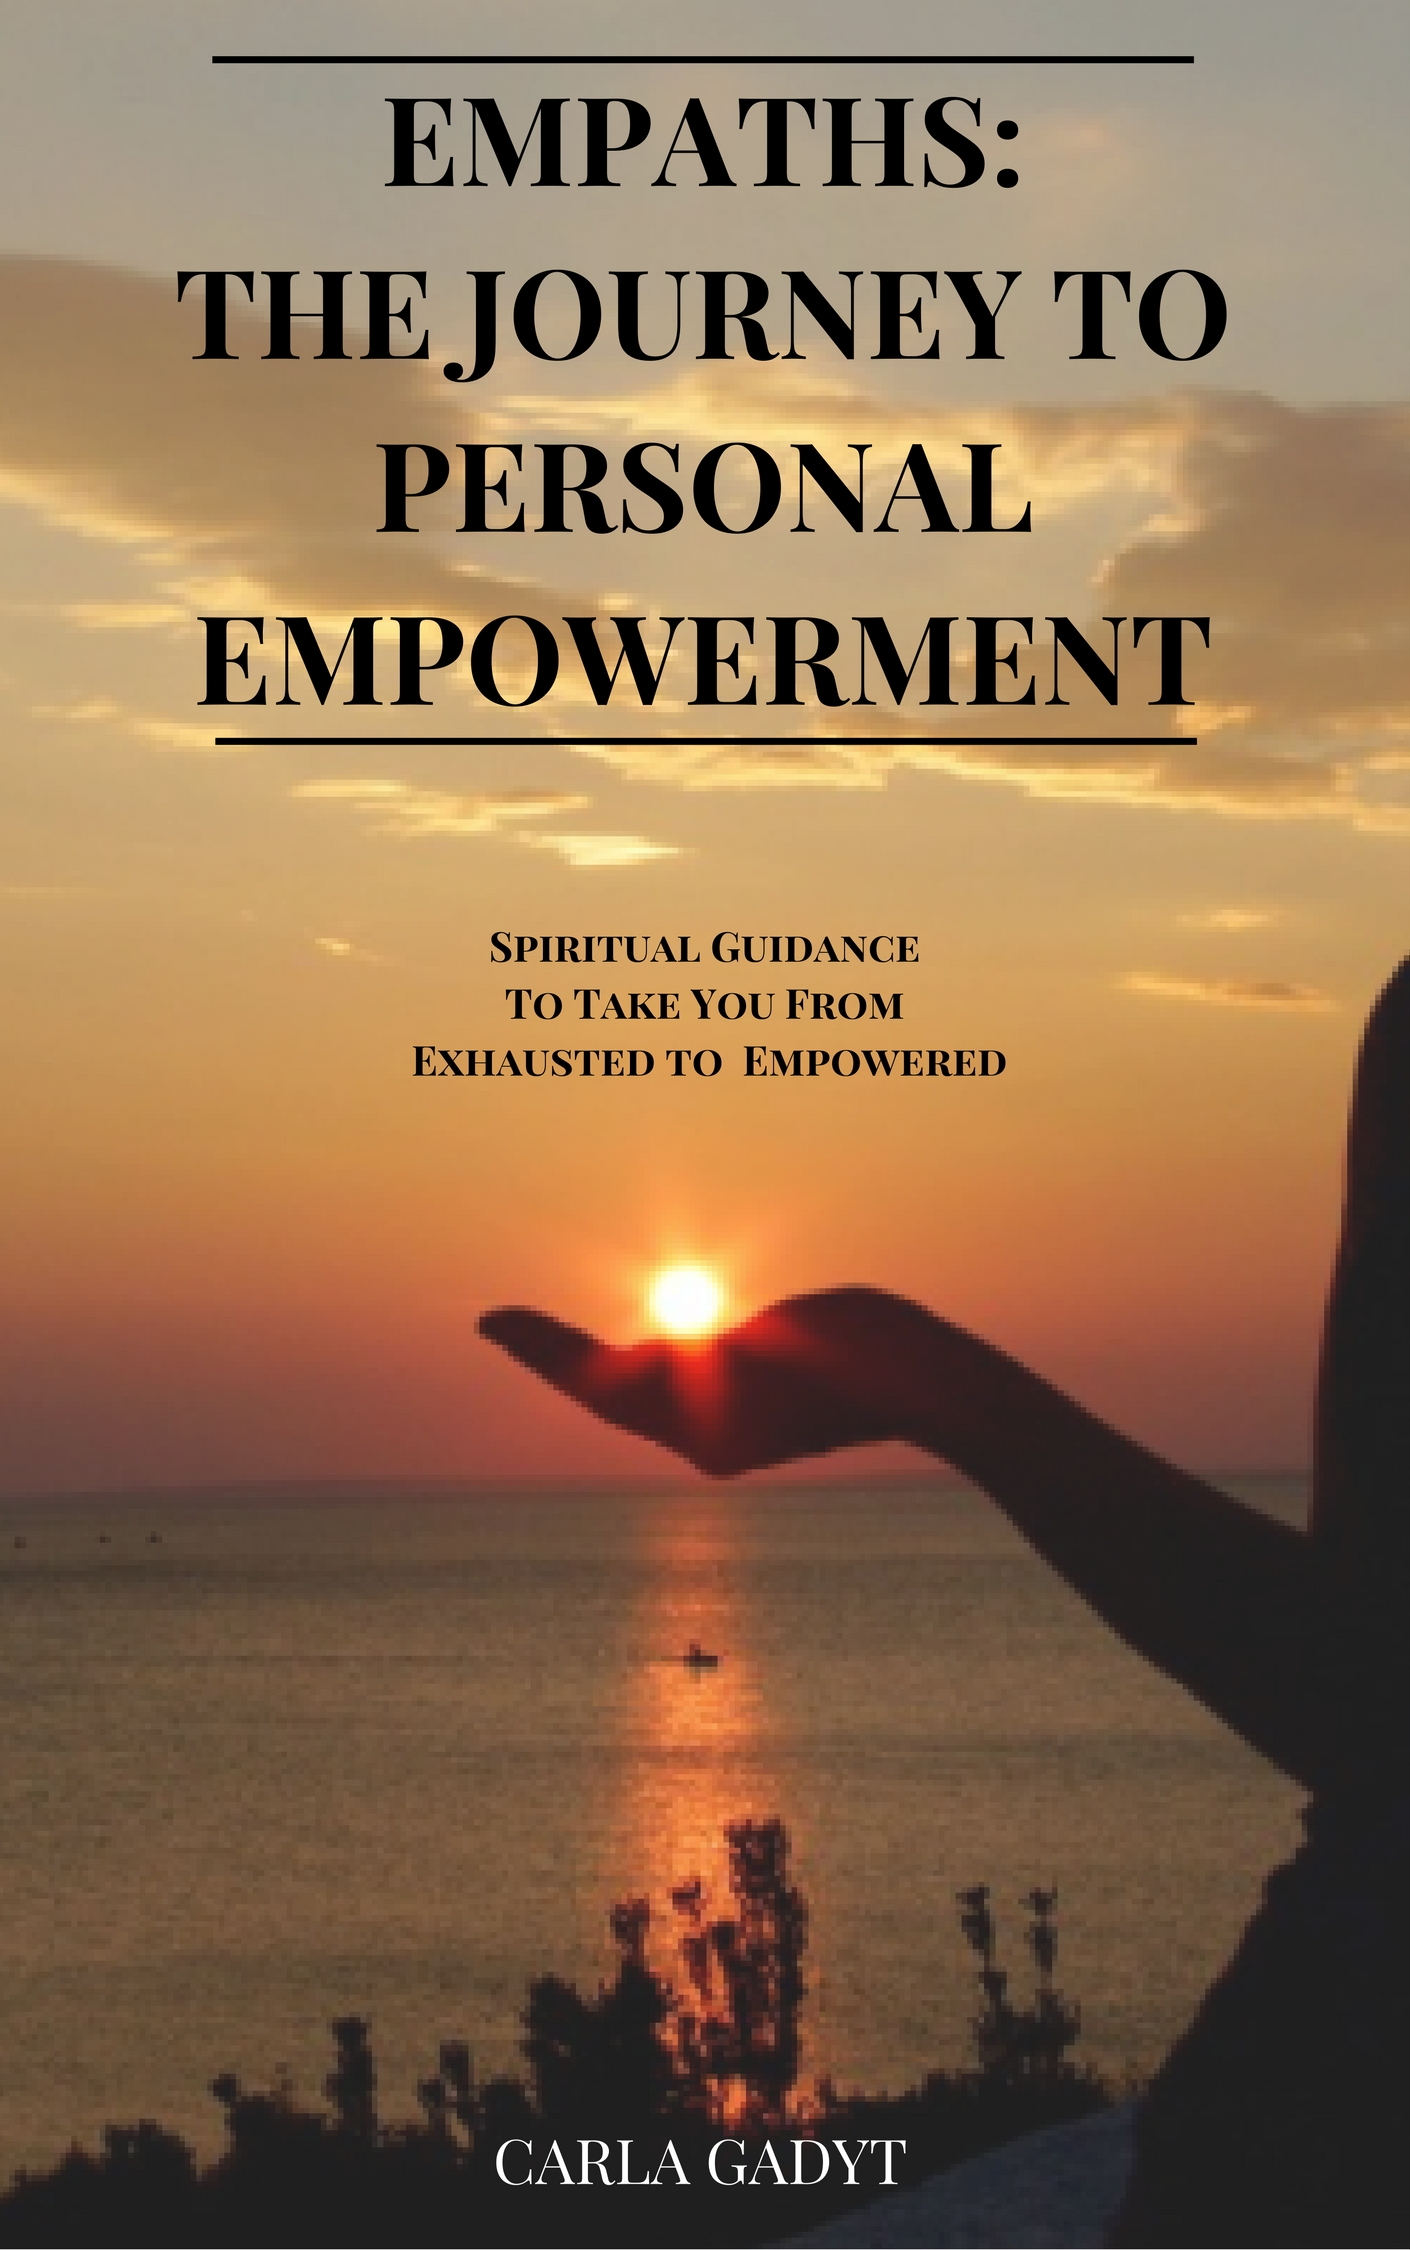 Empaths: The Journey To Personal Empowerment, an Ebook by Carla Gadyt